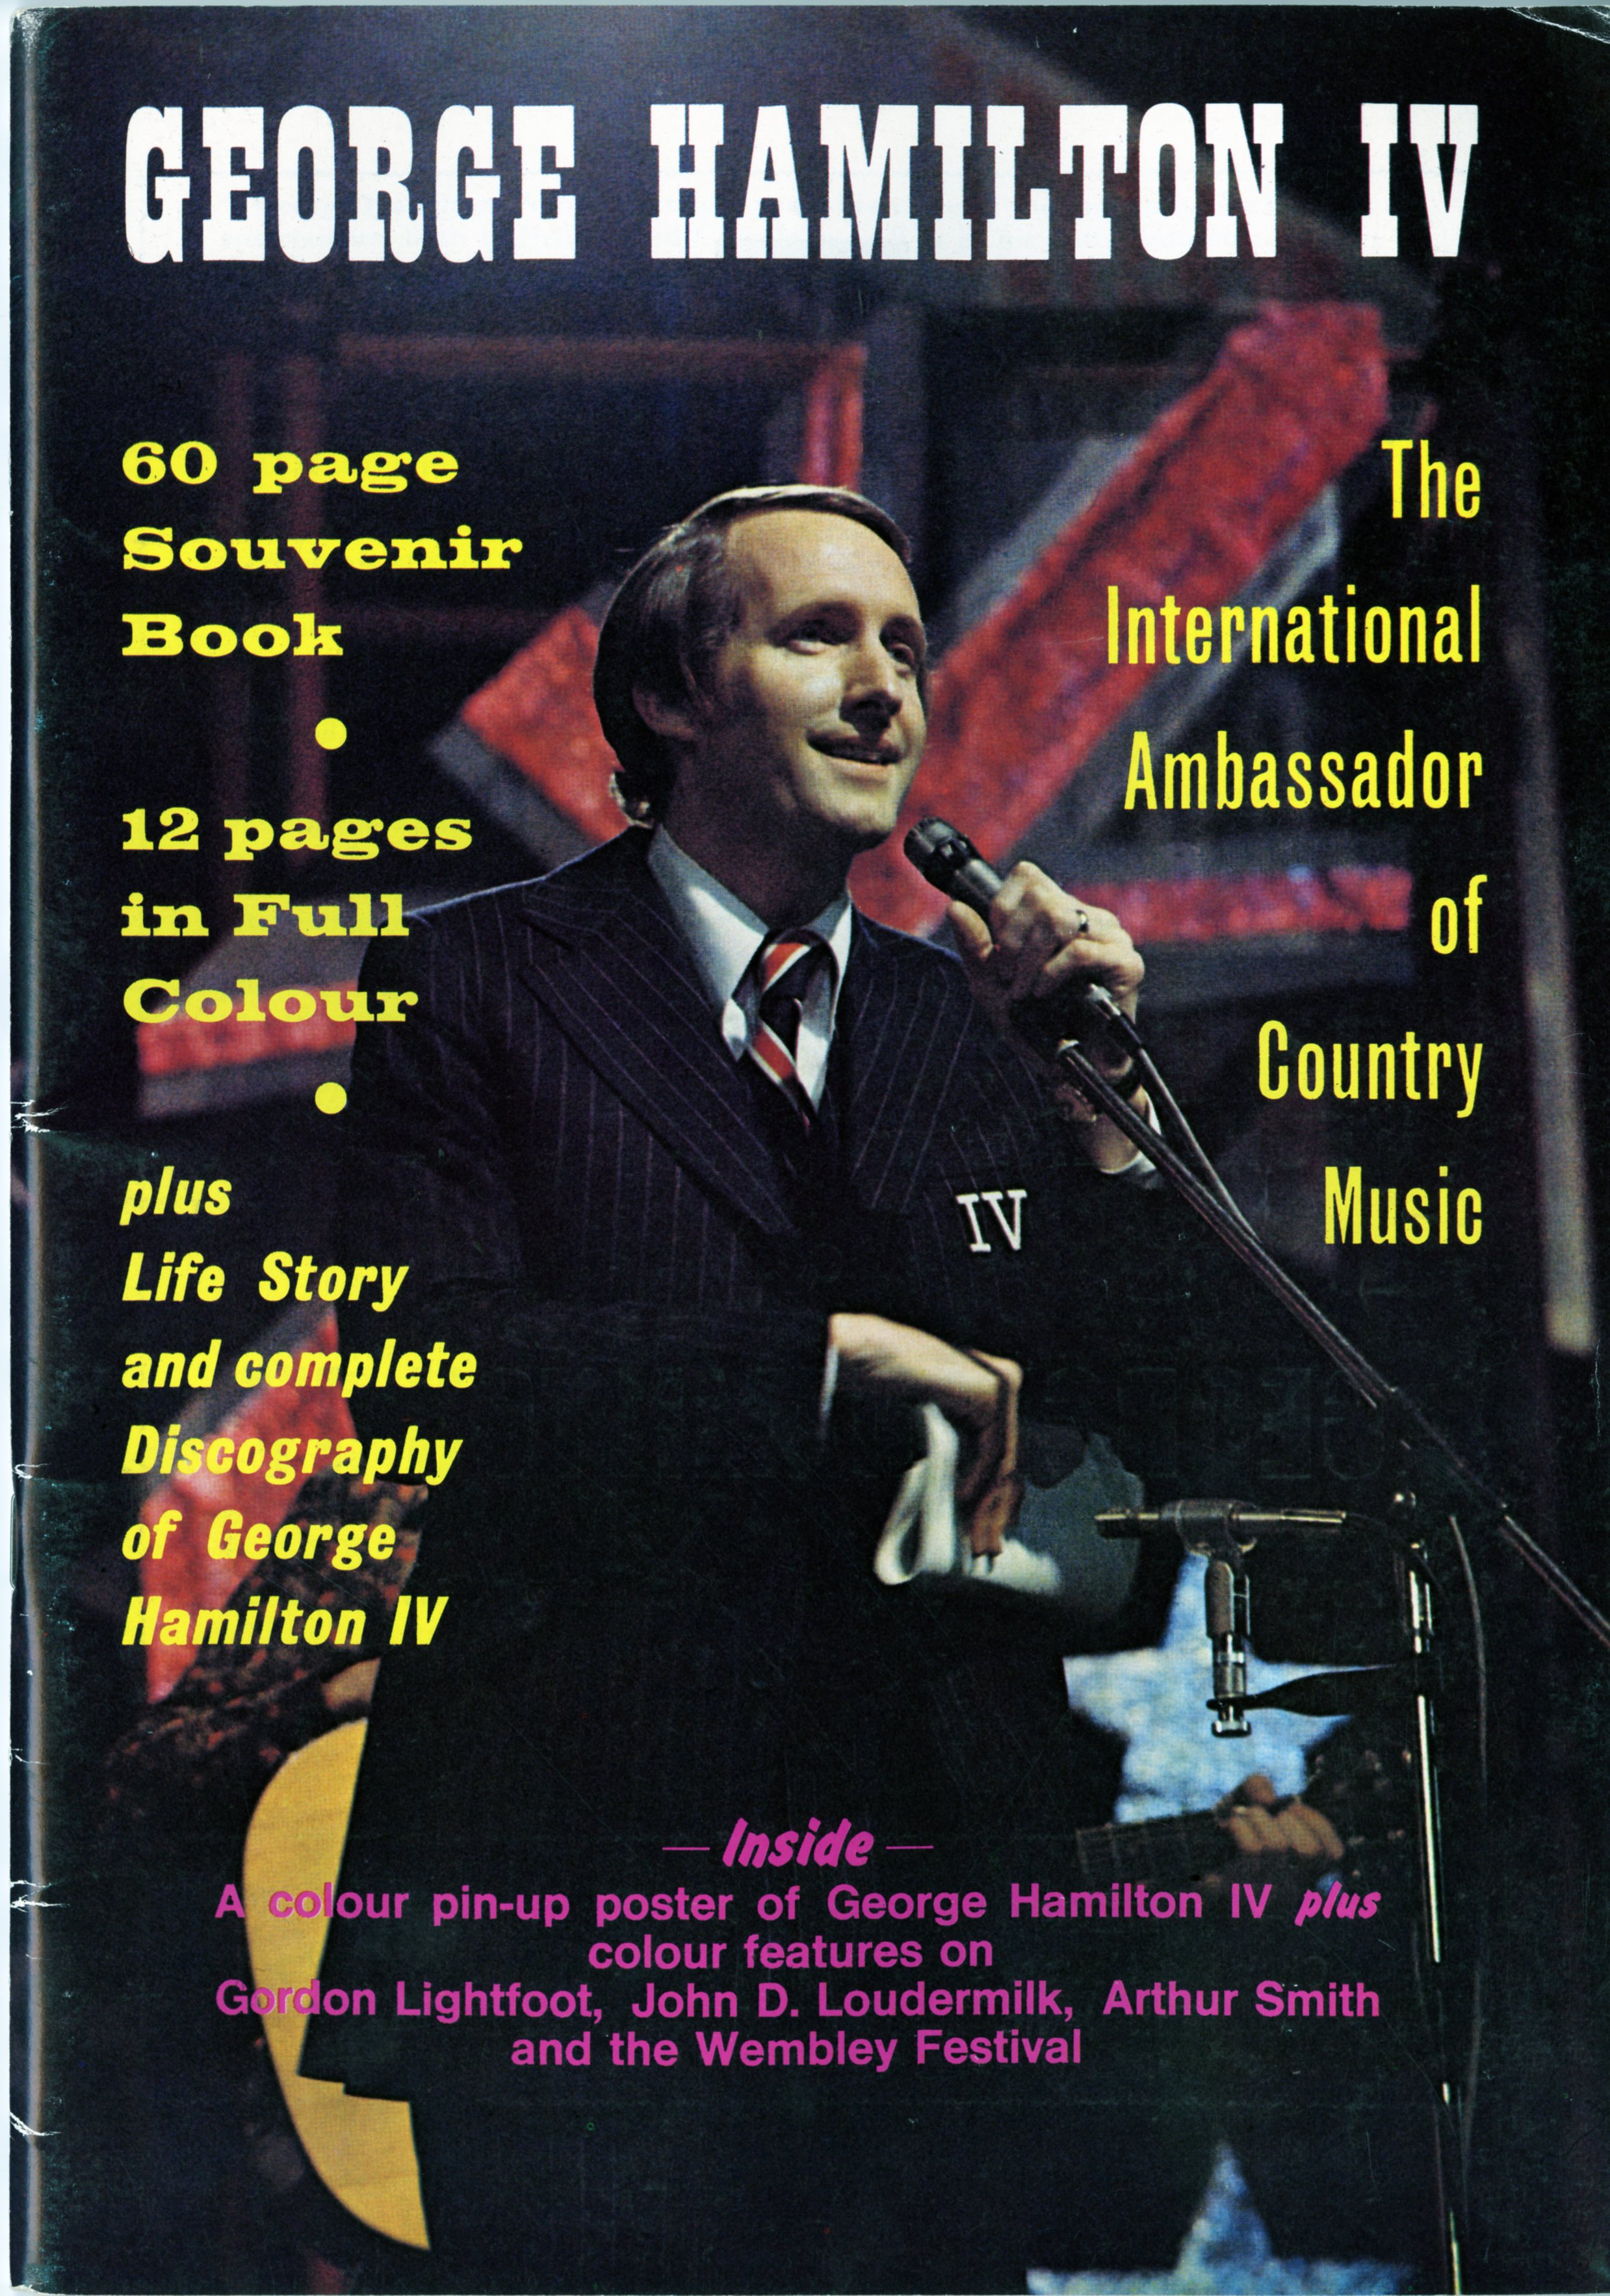 George Hamilton IV by Bud Powell, Folder 35 in the George Hamilton IV Collection (20410), Southern Folklife Collection, UNC Chapel Hill